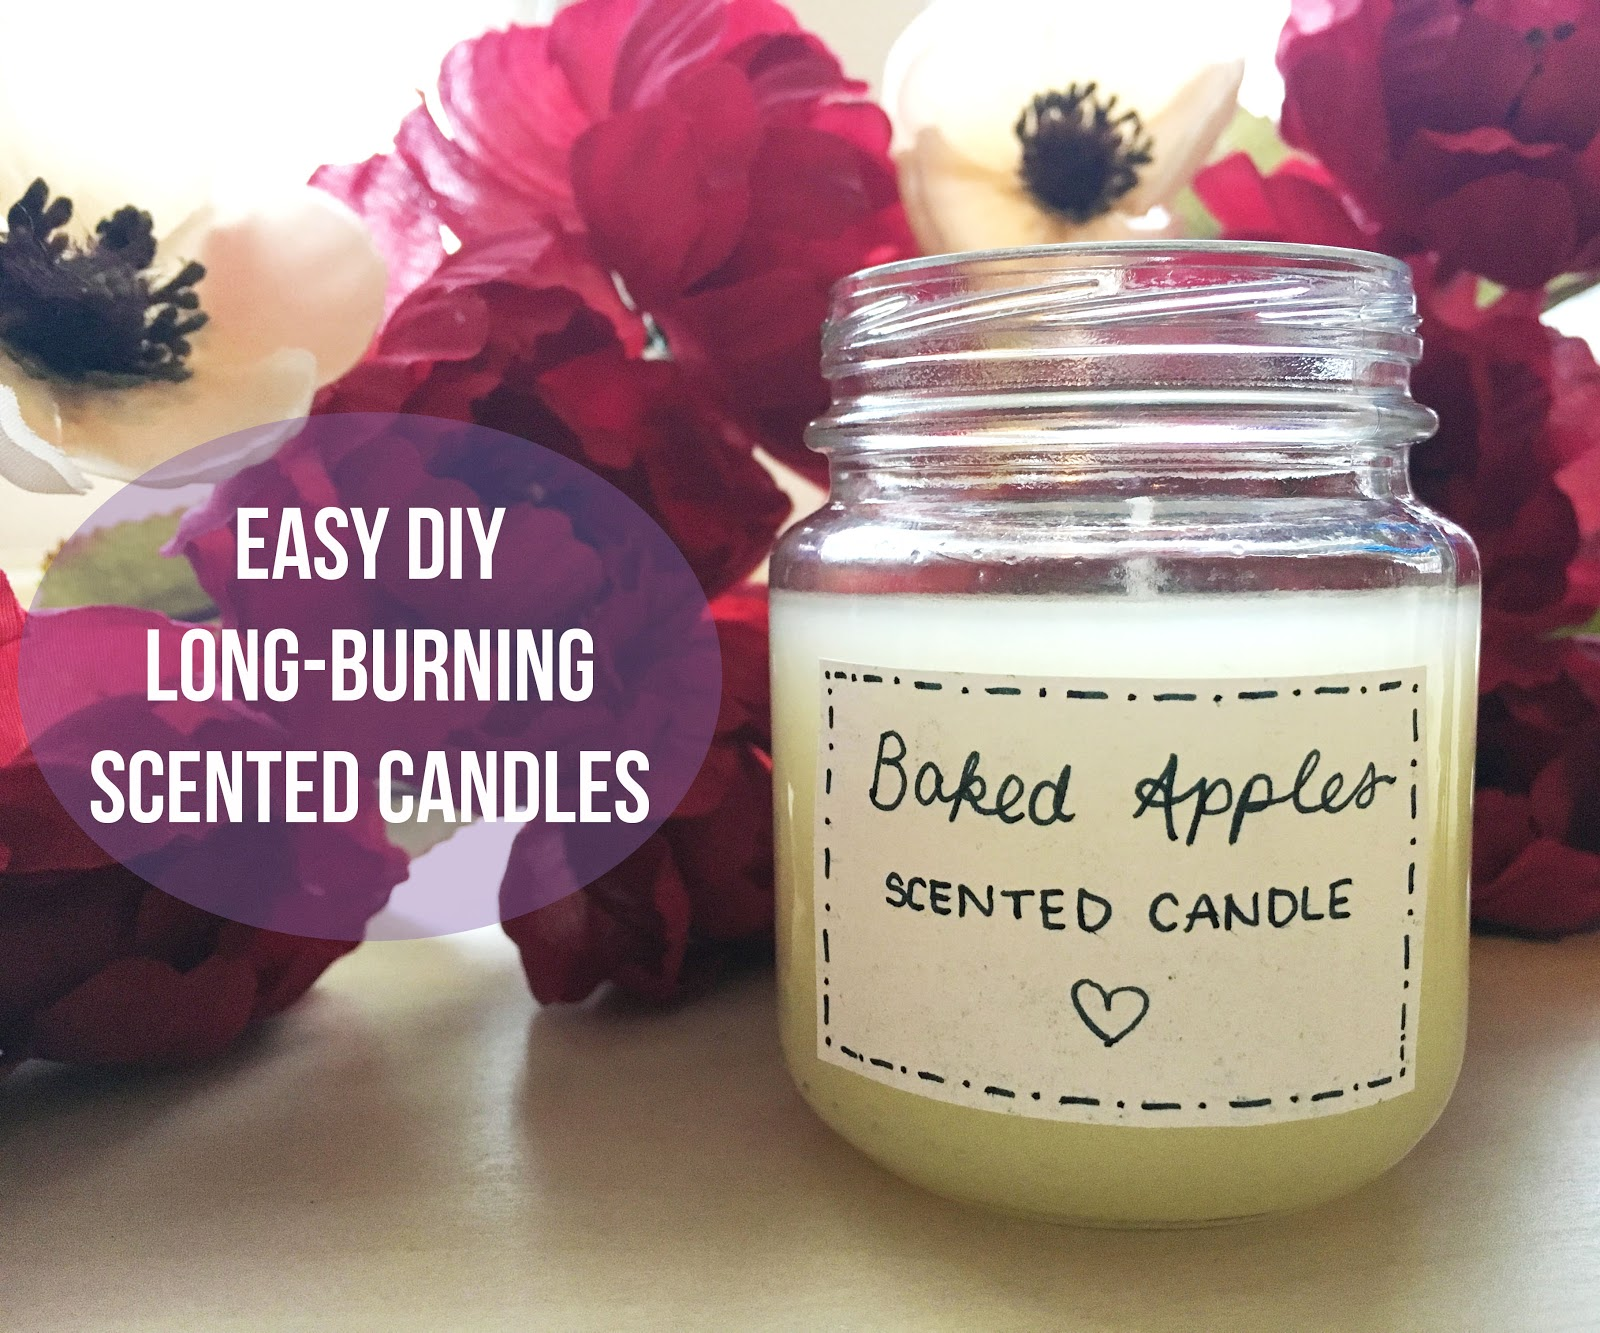 Easy DIY Long-Burning Scented Candles | Akinokiki